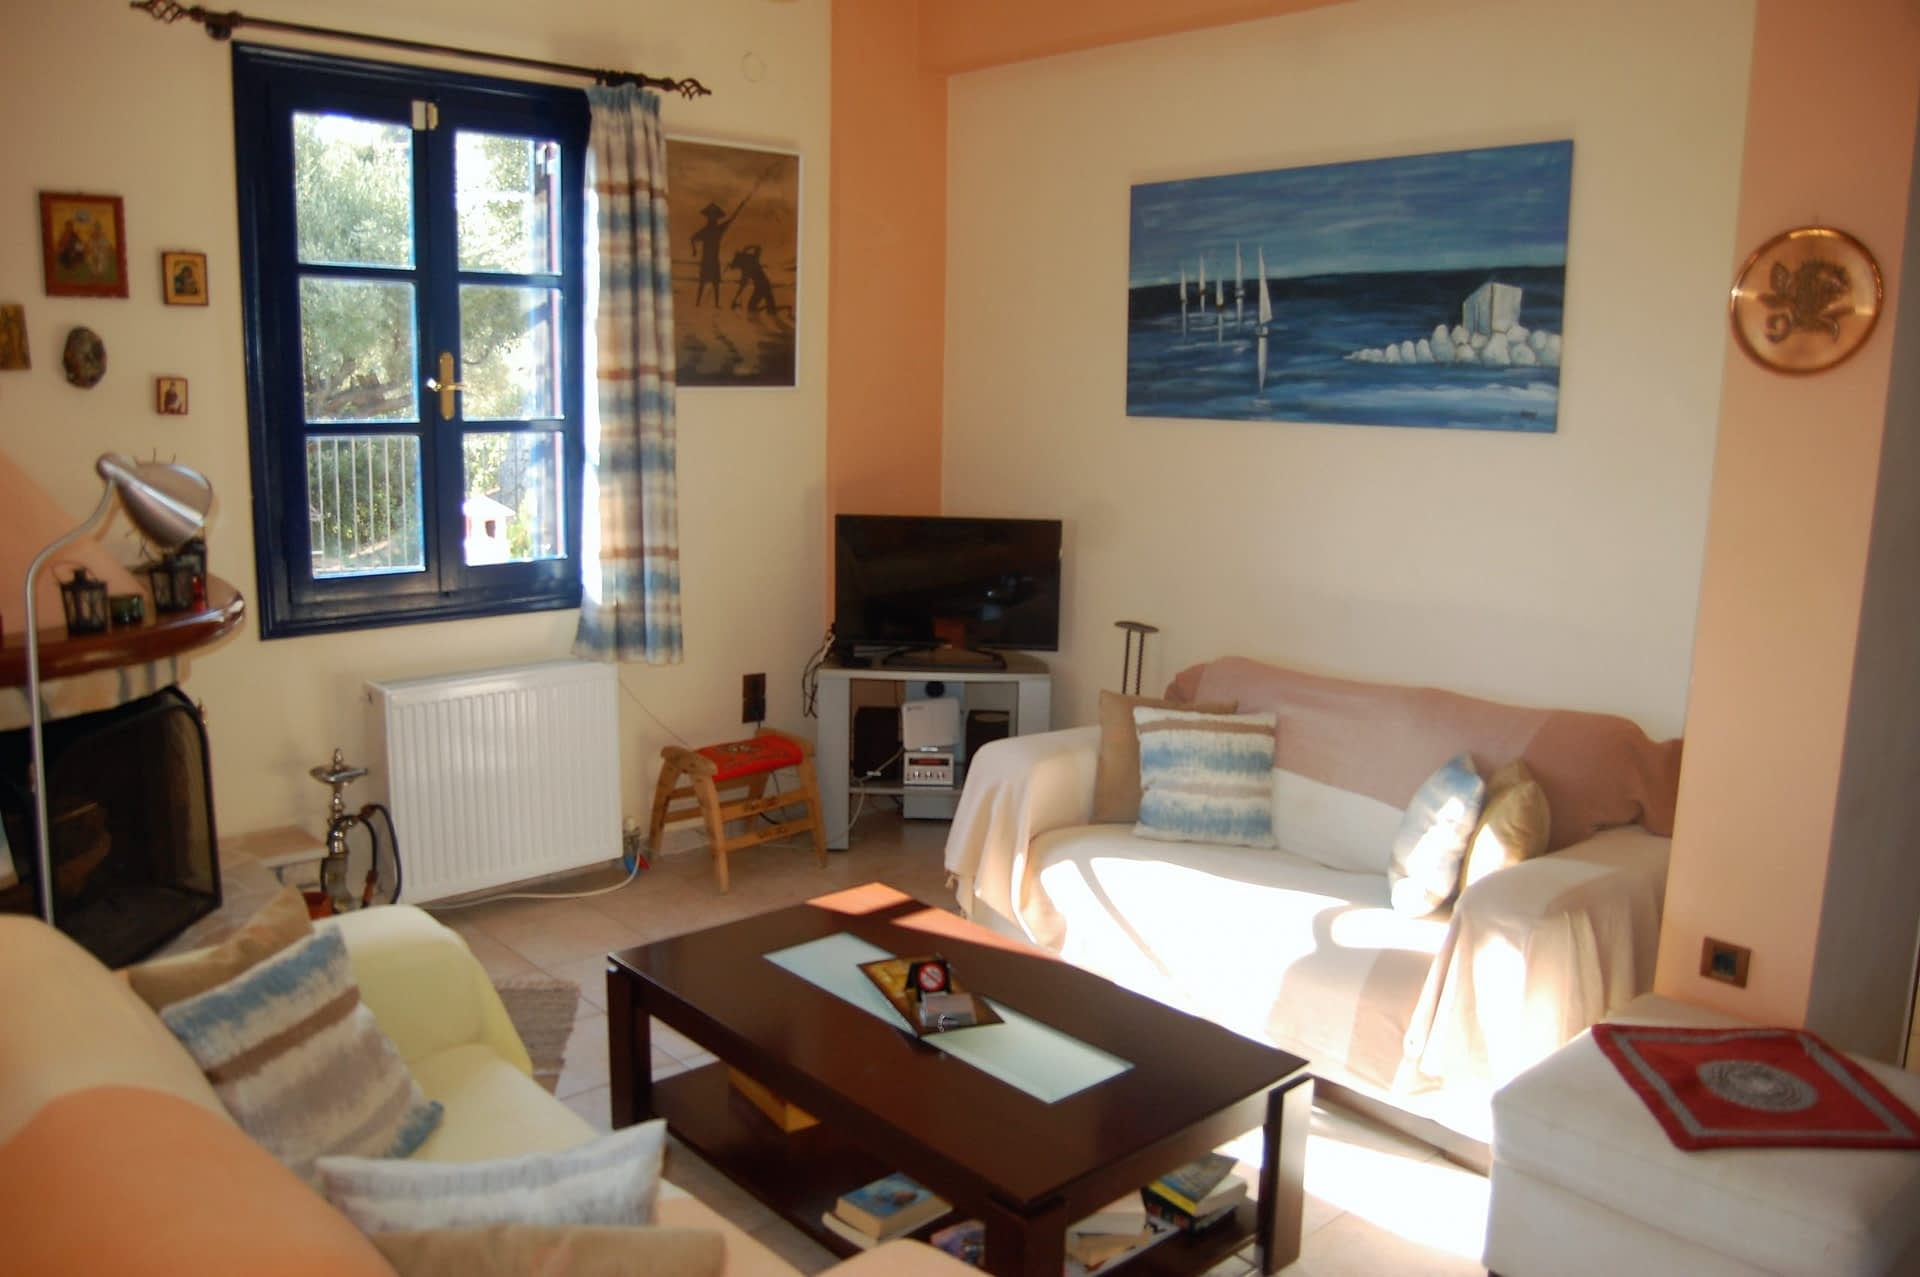 Interior living room of house for sale Ithaca Greece, Kioni